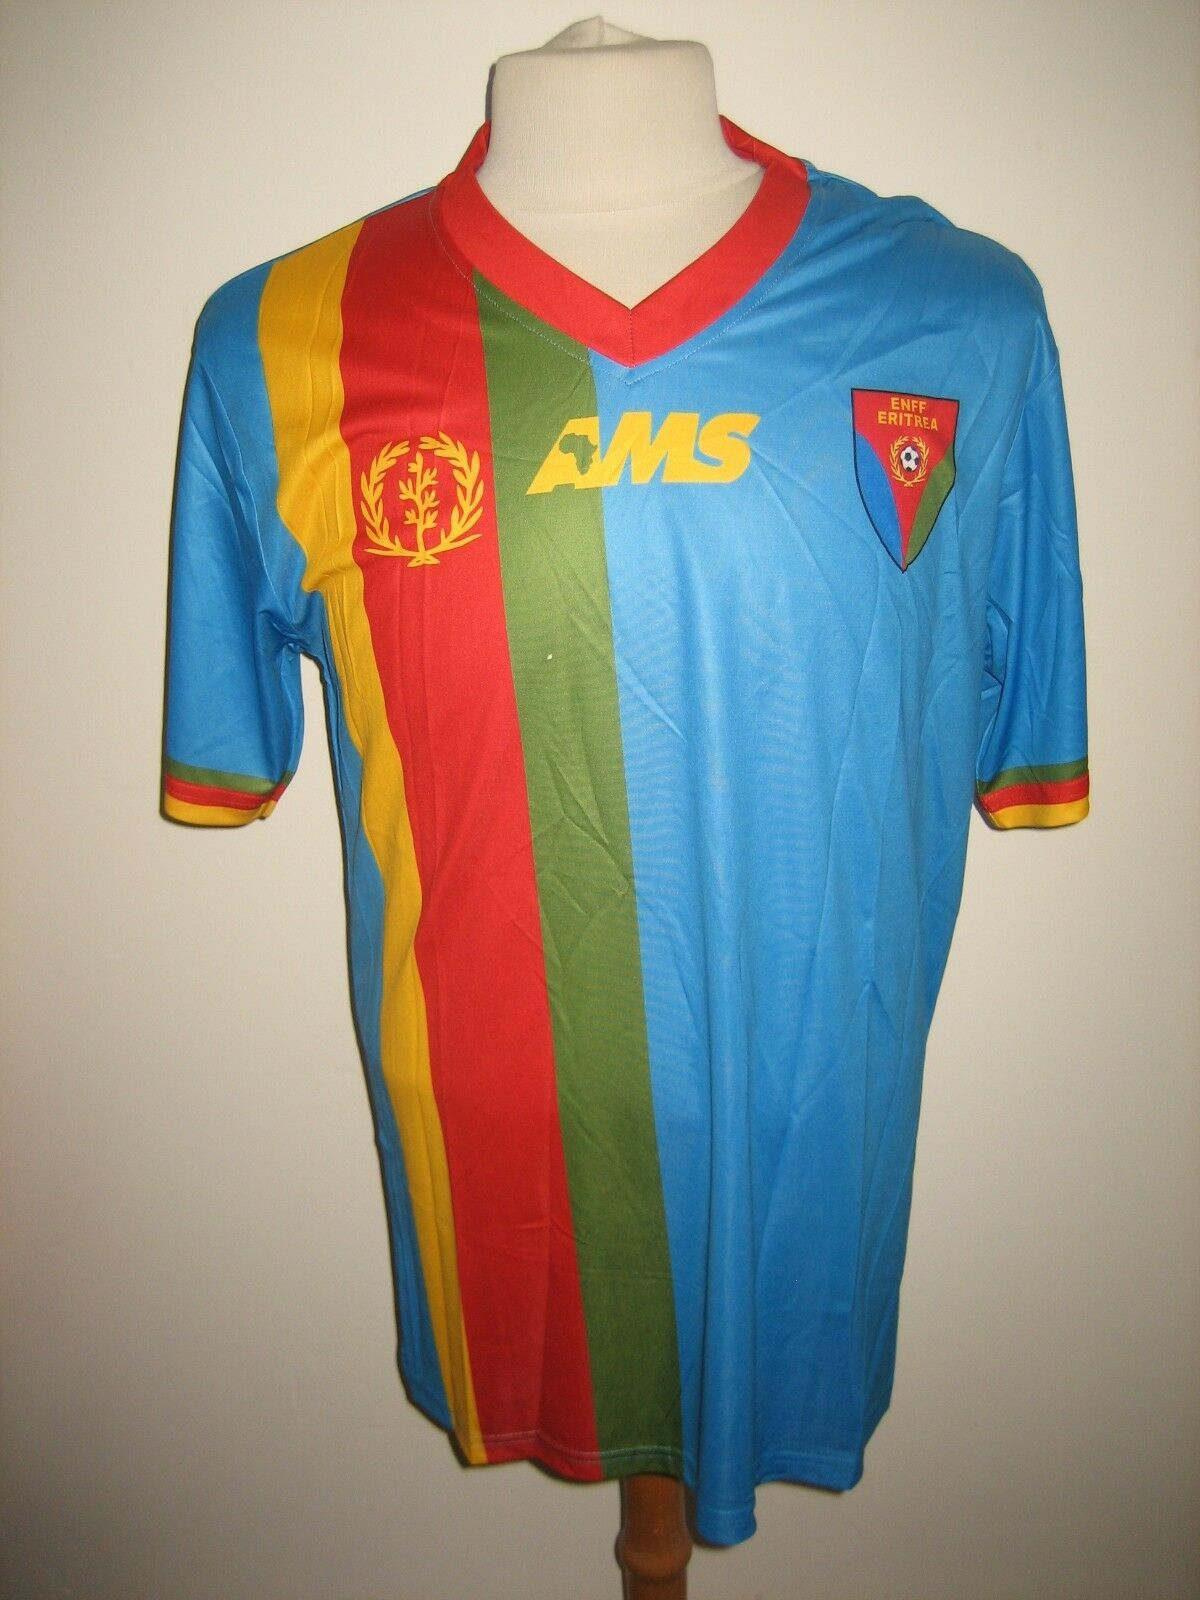 Eritrea away rare CAF Africa footbtutti shirt soccer jersey maillot trikot Diuominiione M